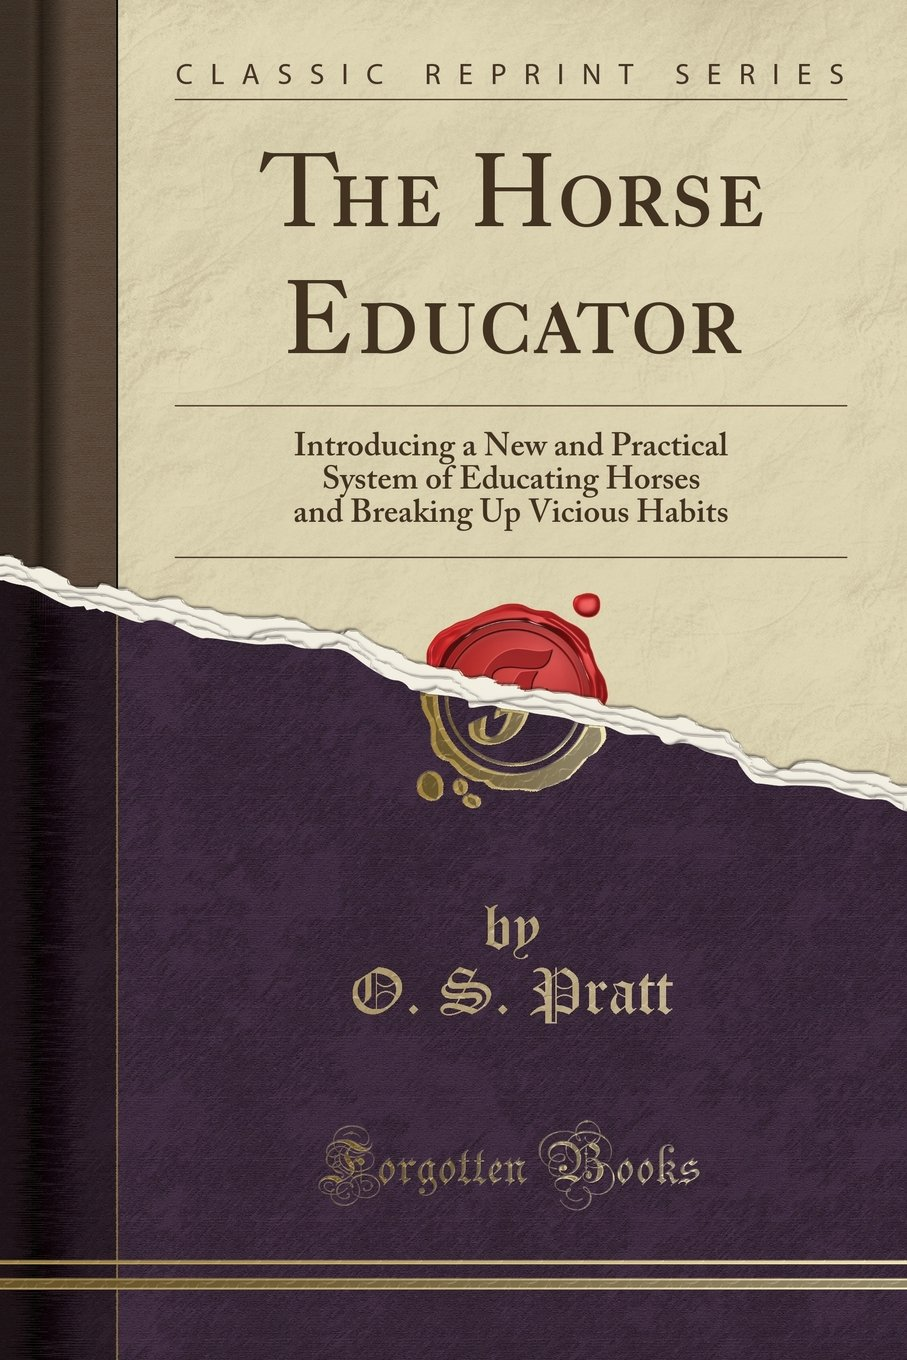 The Horse Educator: Introducing a New and Practical System of Educating Horses and Breaking Up Vicious Habits (Classic Reprint) pdf epub